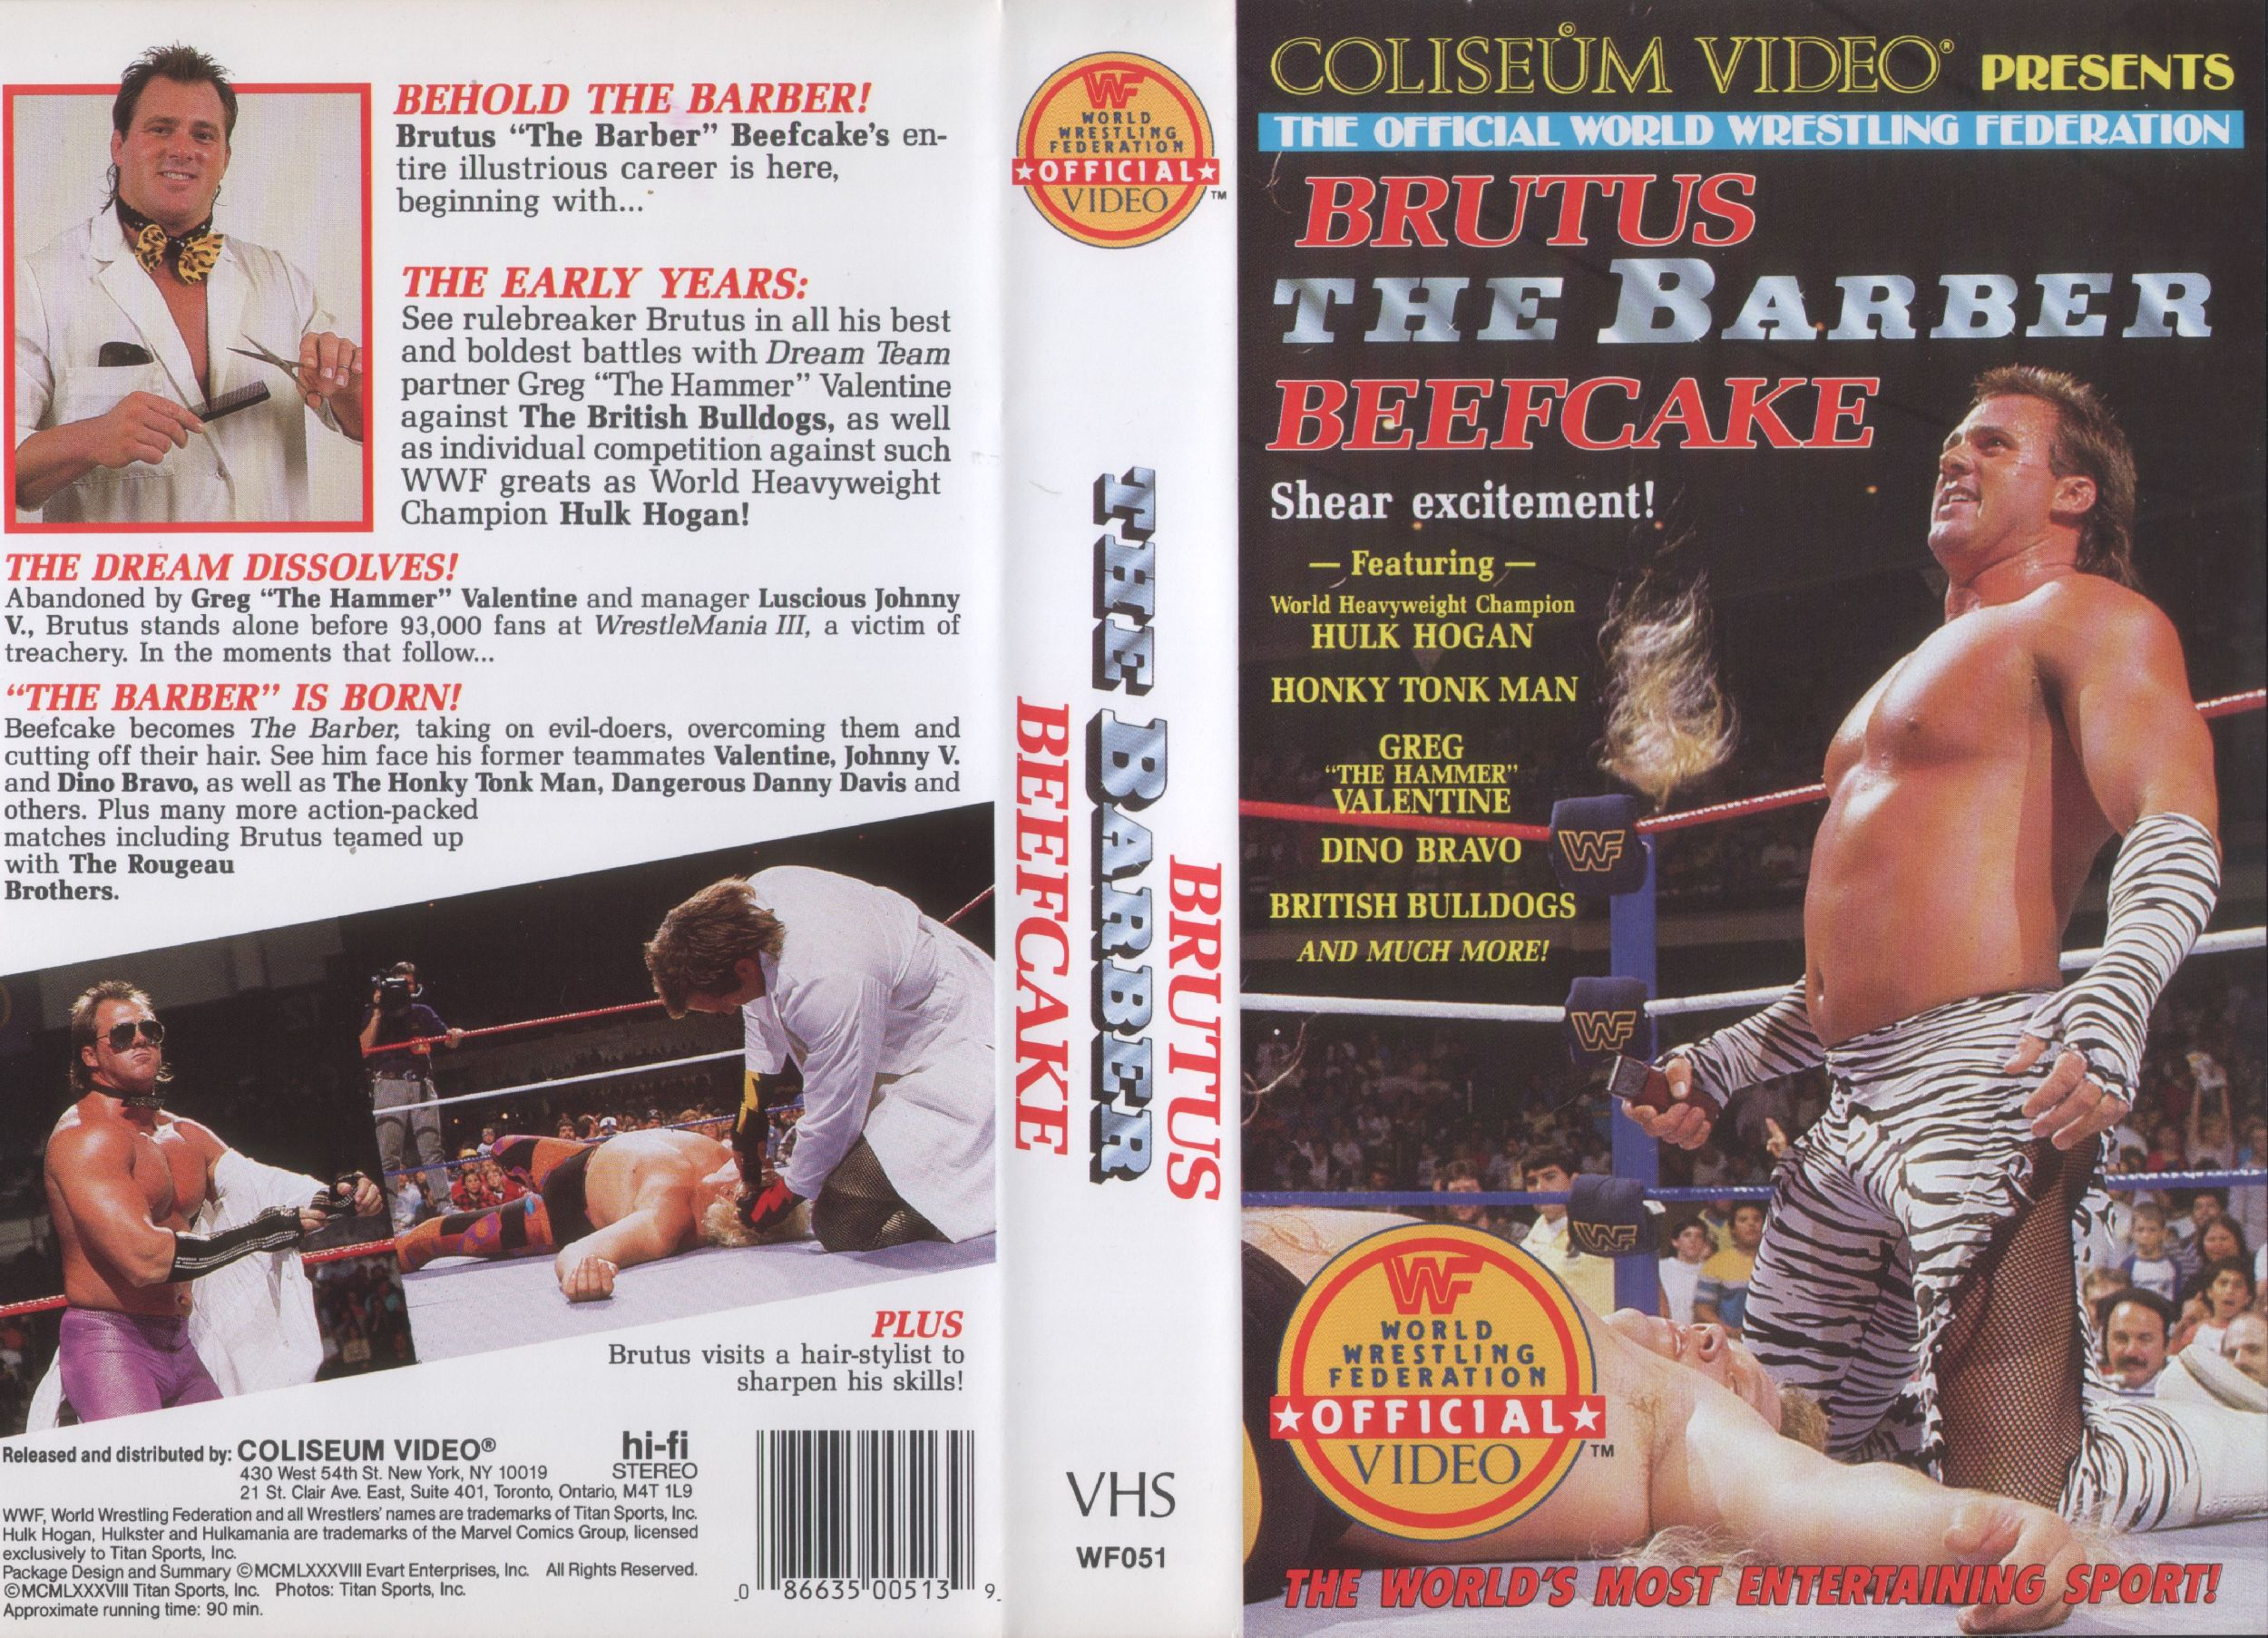 WWF_Brutus_the_Barber_Beefcake_-_Cover